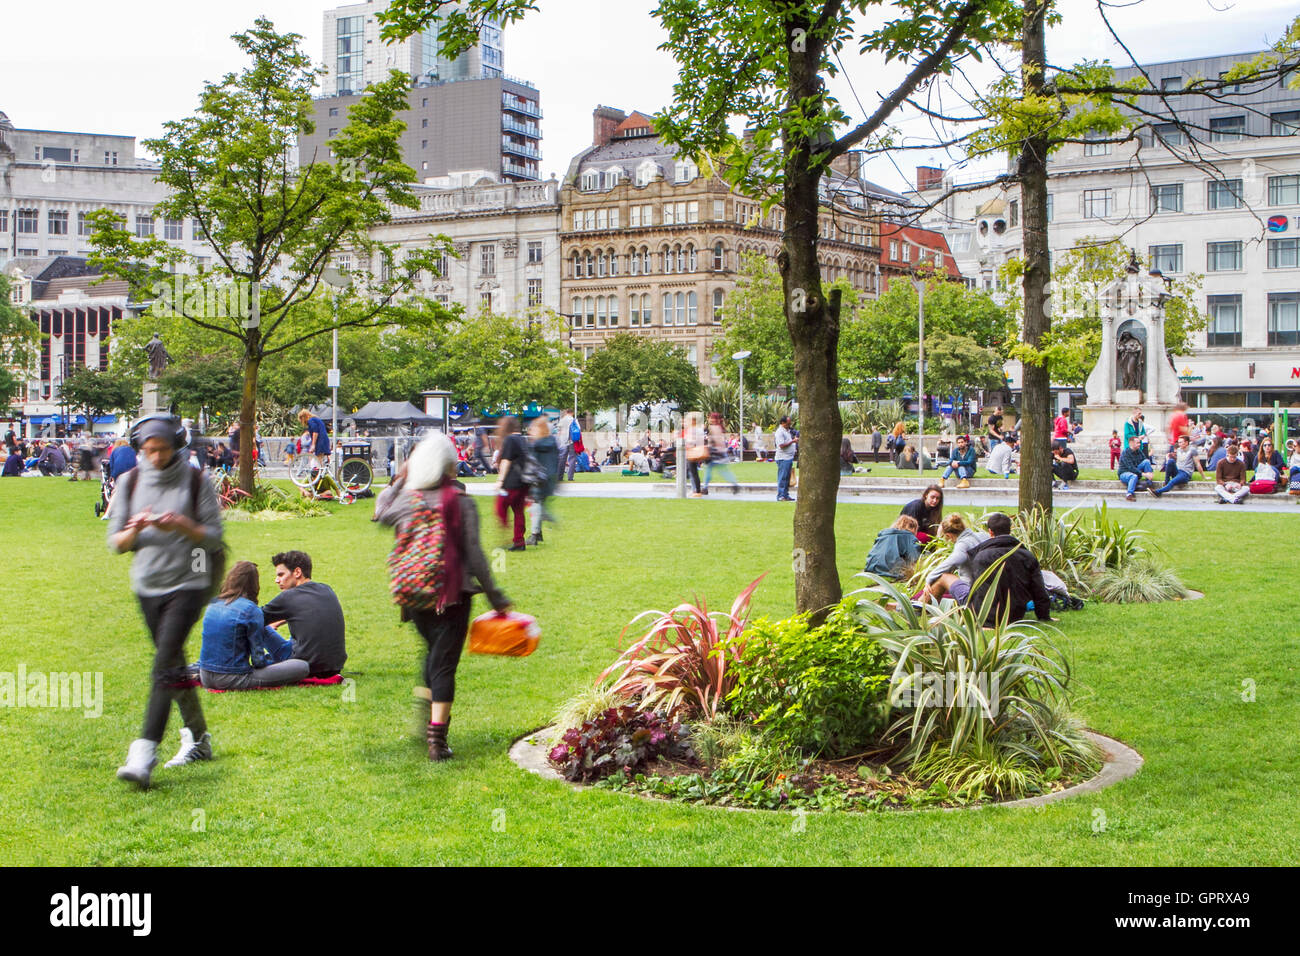 Piccadilly Gardens, a great public space in Manchester, UK - Stock Image